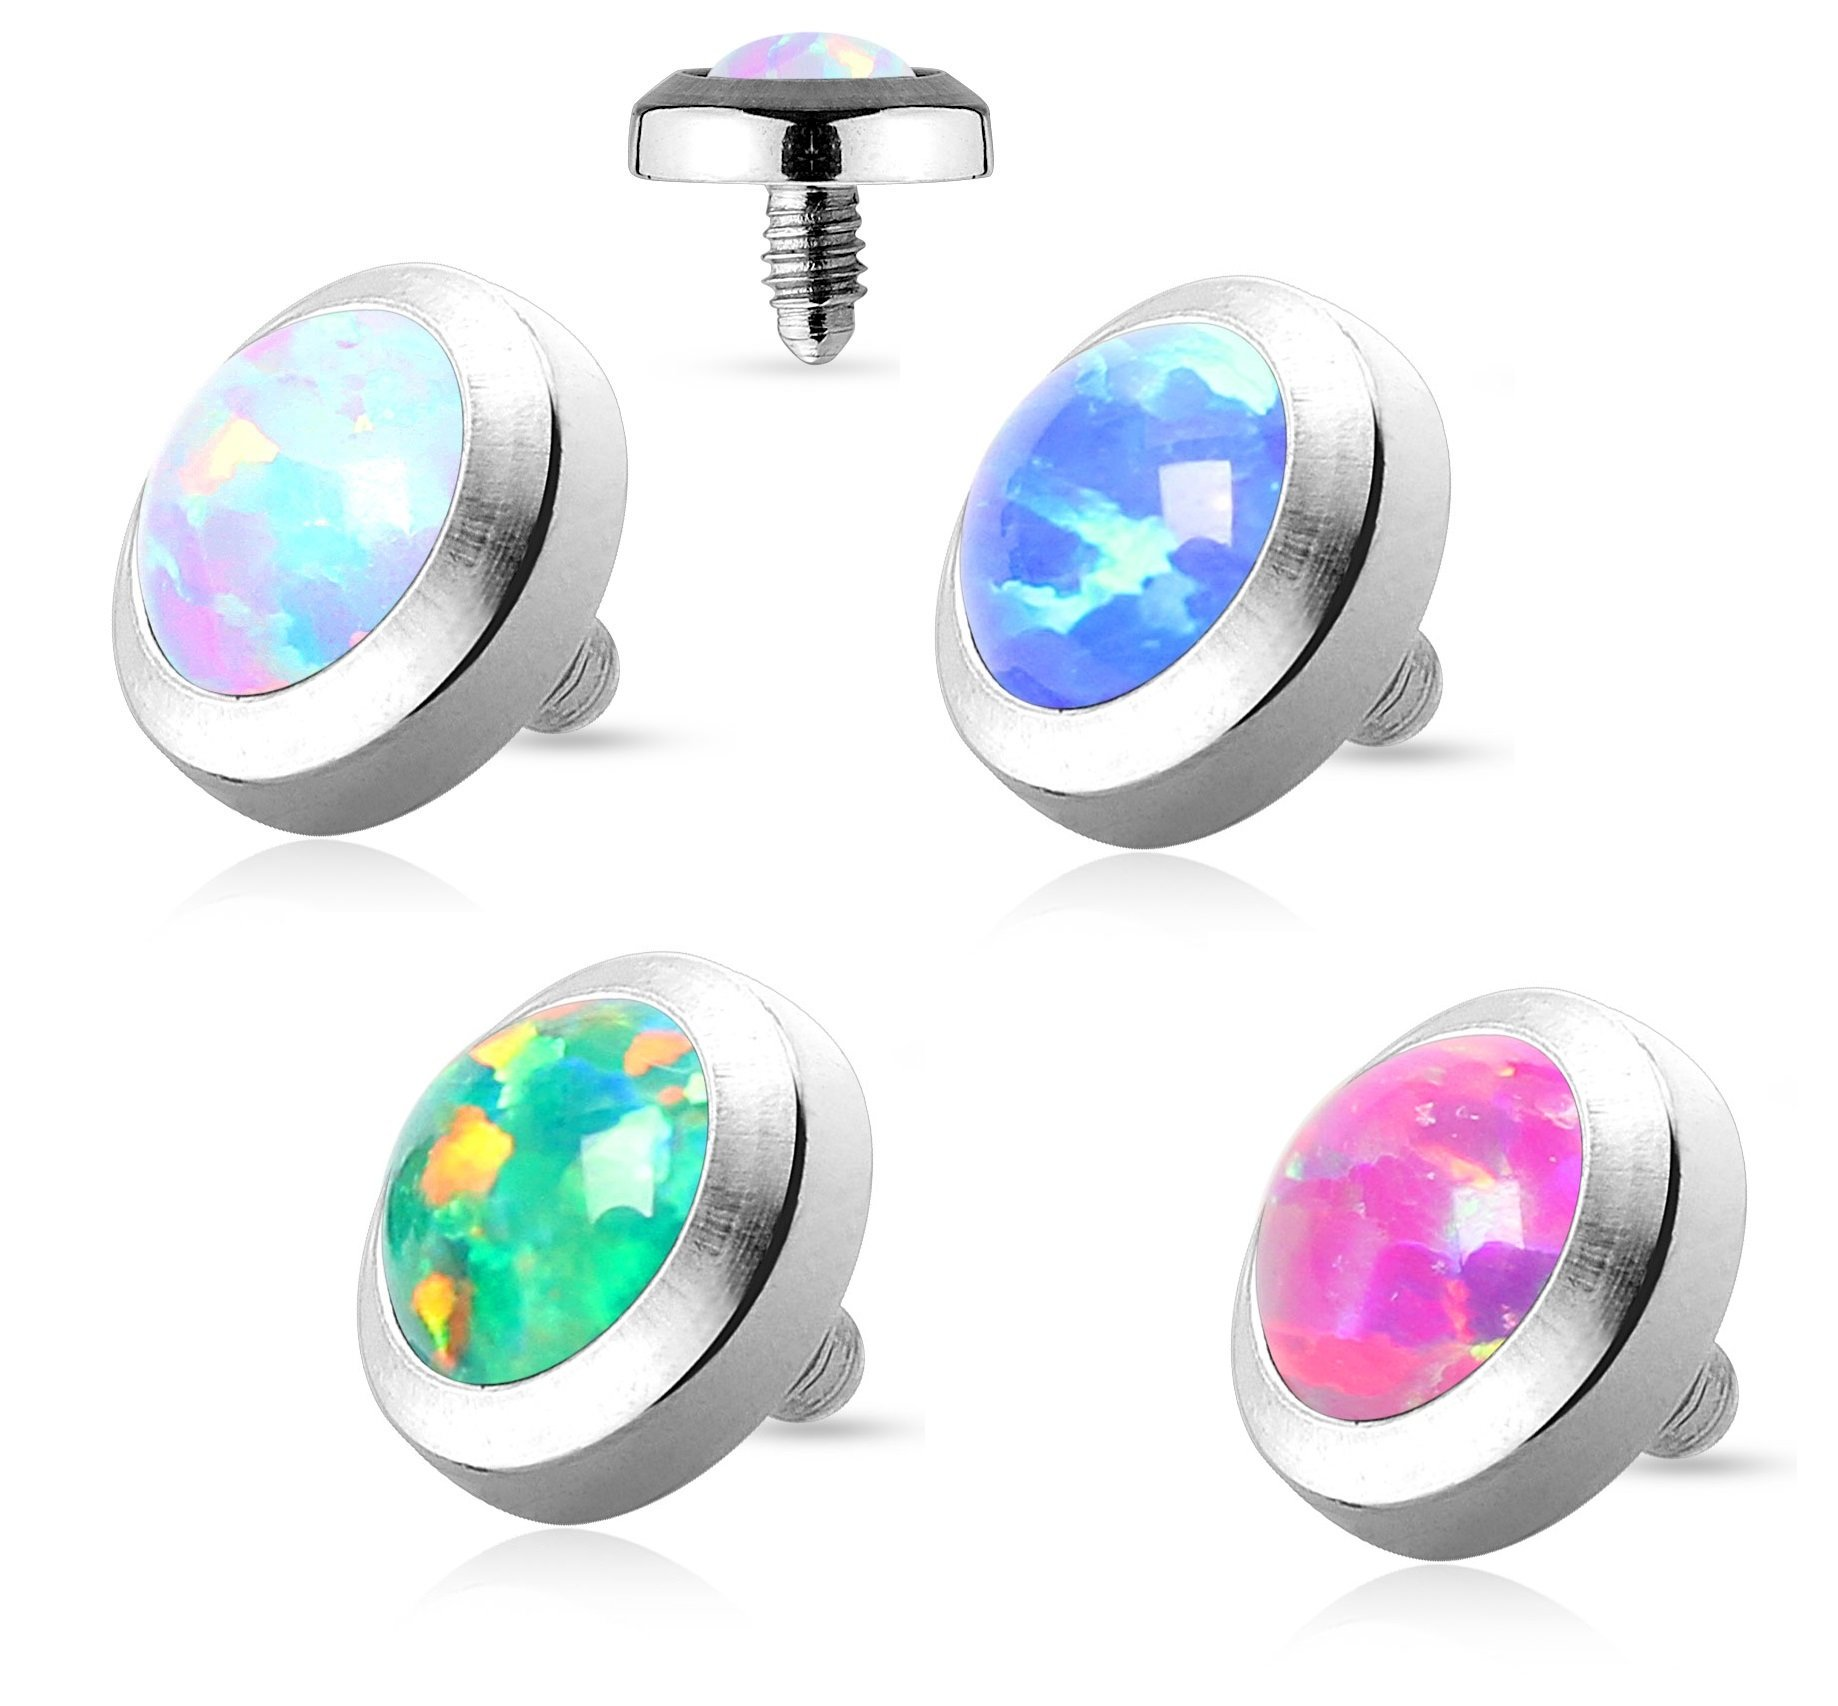 Pierced Owl Set of 4 316L Surgical Steel Flat Dermal Anchor Top with Opal 4mm Top - Blue, White, Green, and Pink